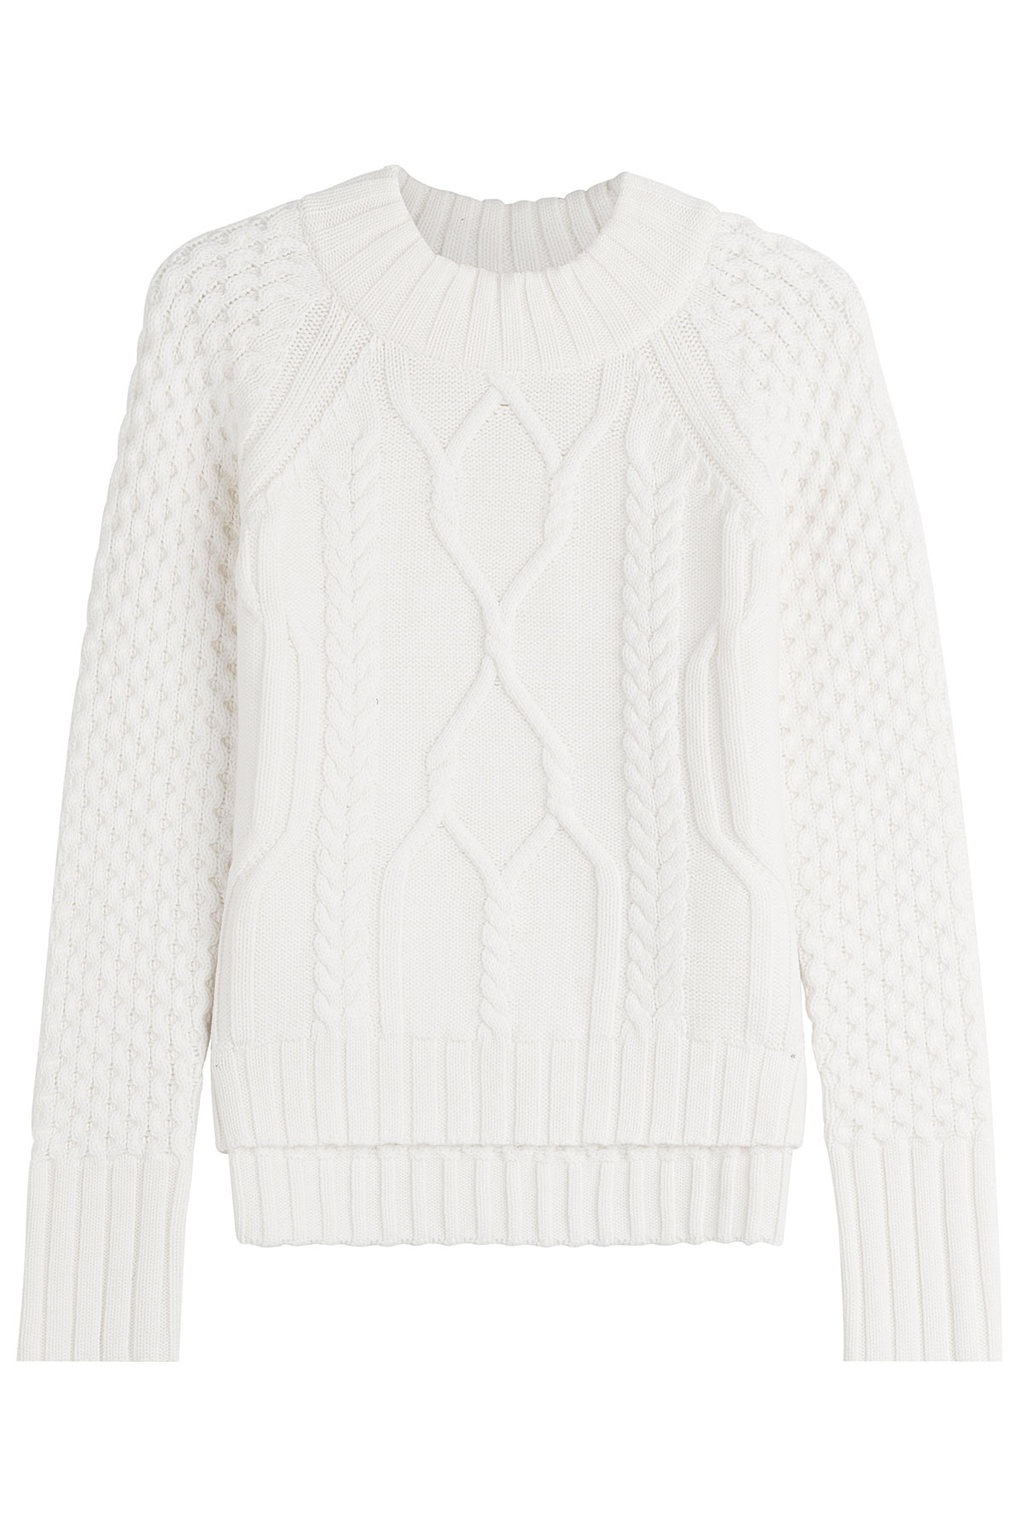 Wool Patterned Knit Pullover - sleeve style: raglan; style: standard; pattern: cable knit; predominant colour: white; occasions: casual, creative work; length: standard; fibres: wool - 100%; fit: standard fit; neckline: crew; sleeve length: long sleeve; texture group: knits/crochet; pattern type: knitted - other; pattern size: standard; season: a/w 2016; wardrobe: highlight